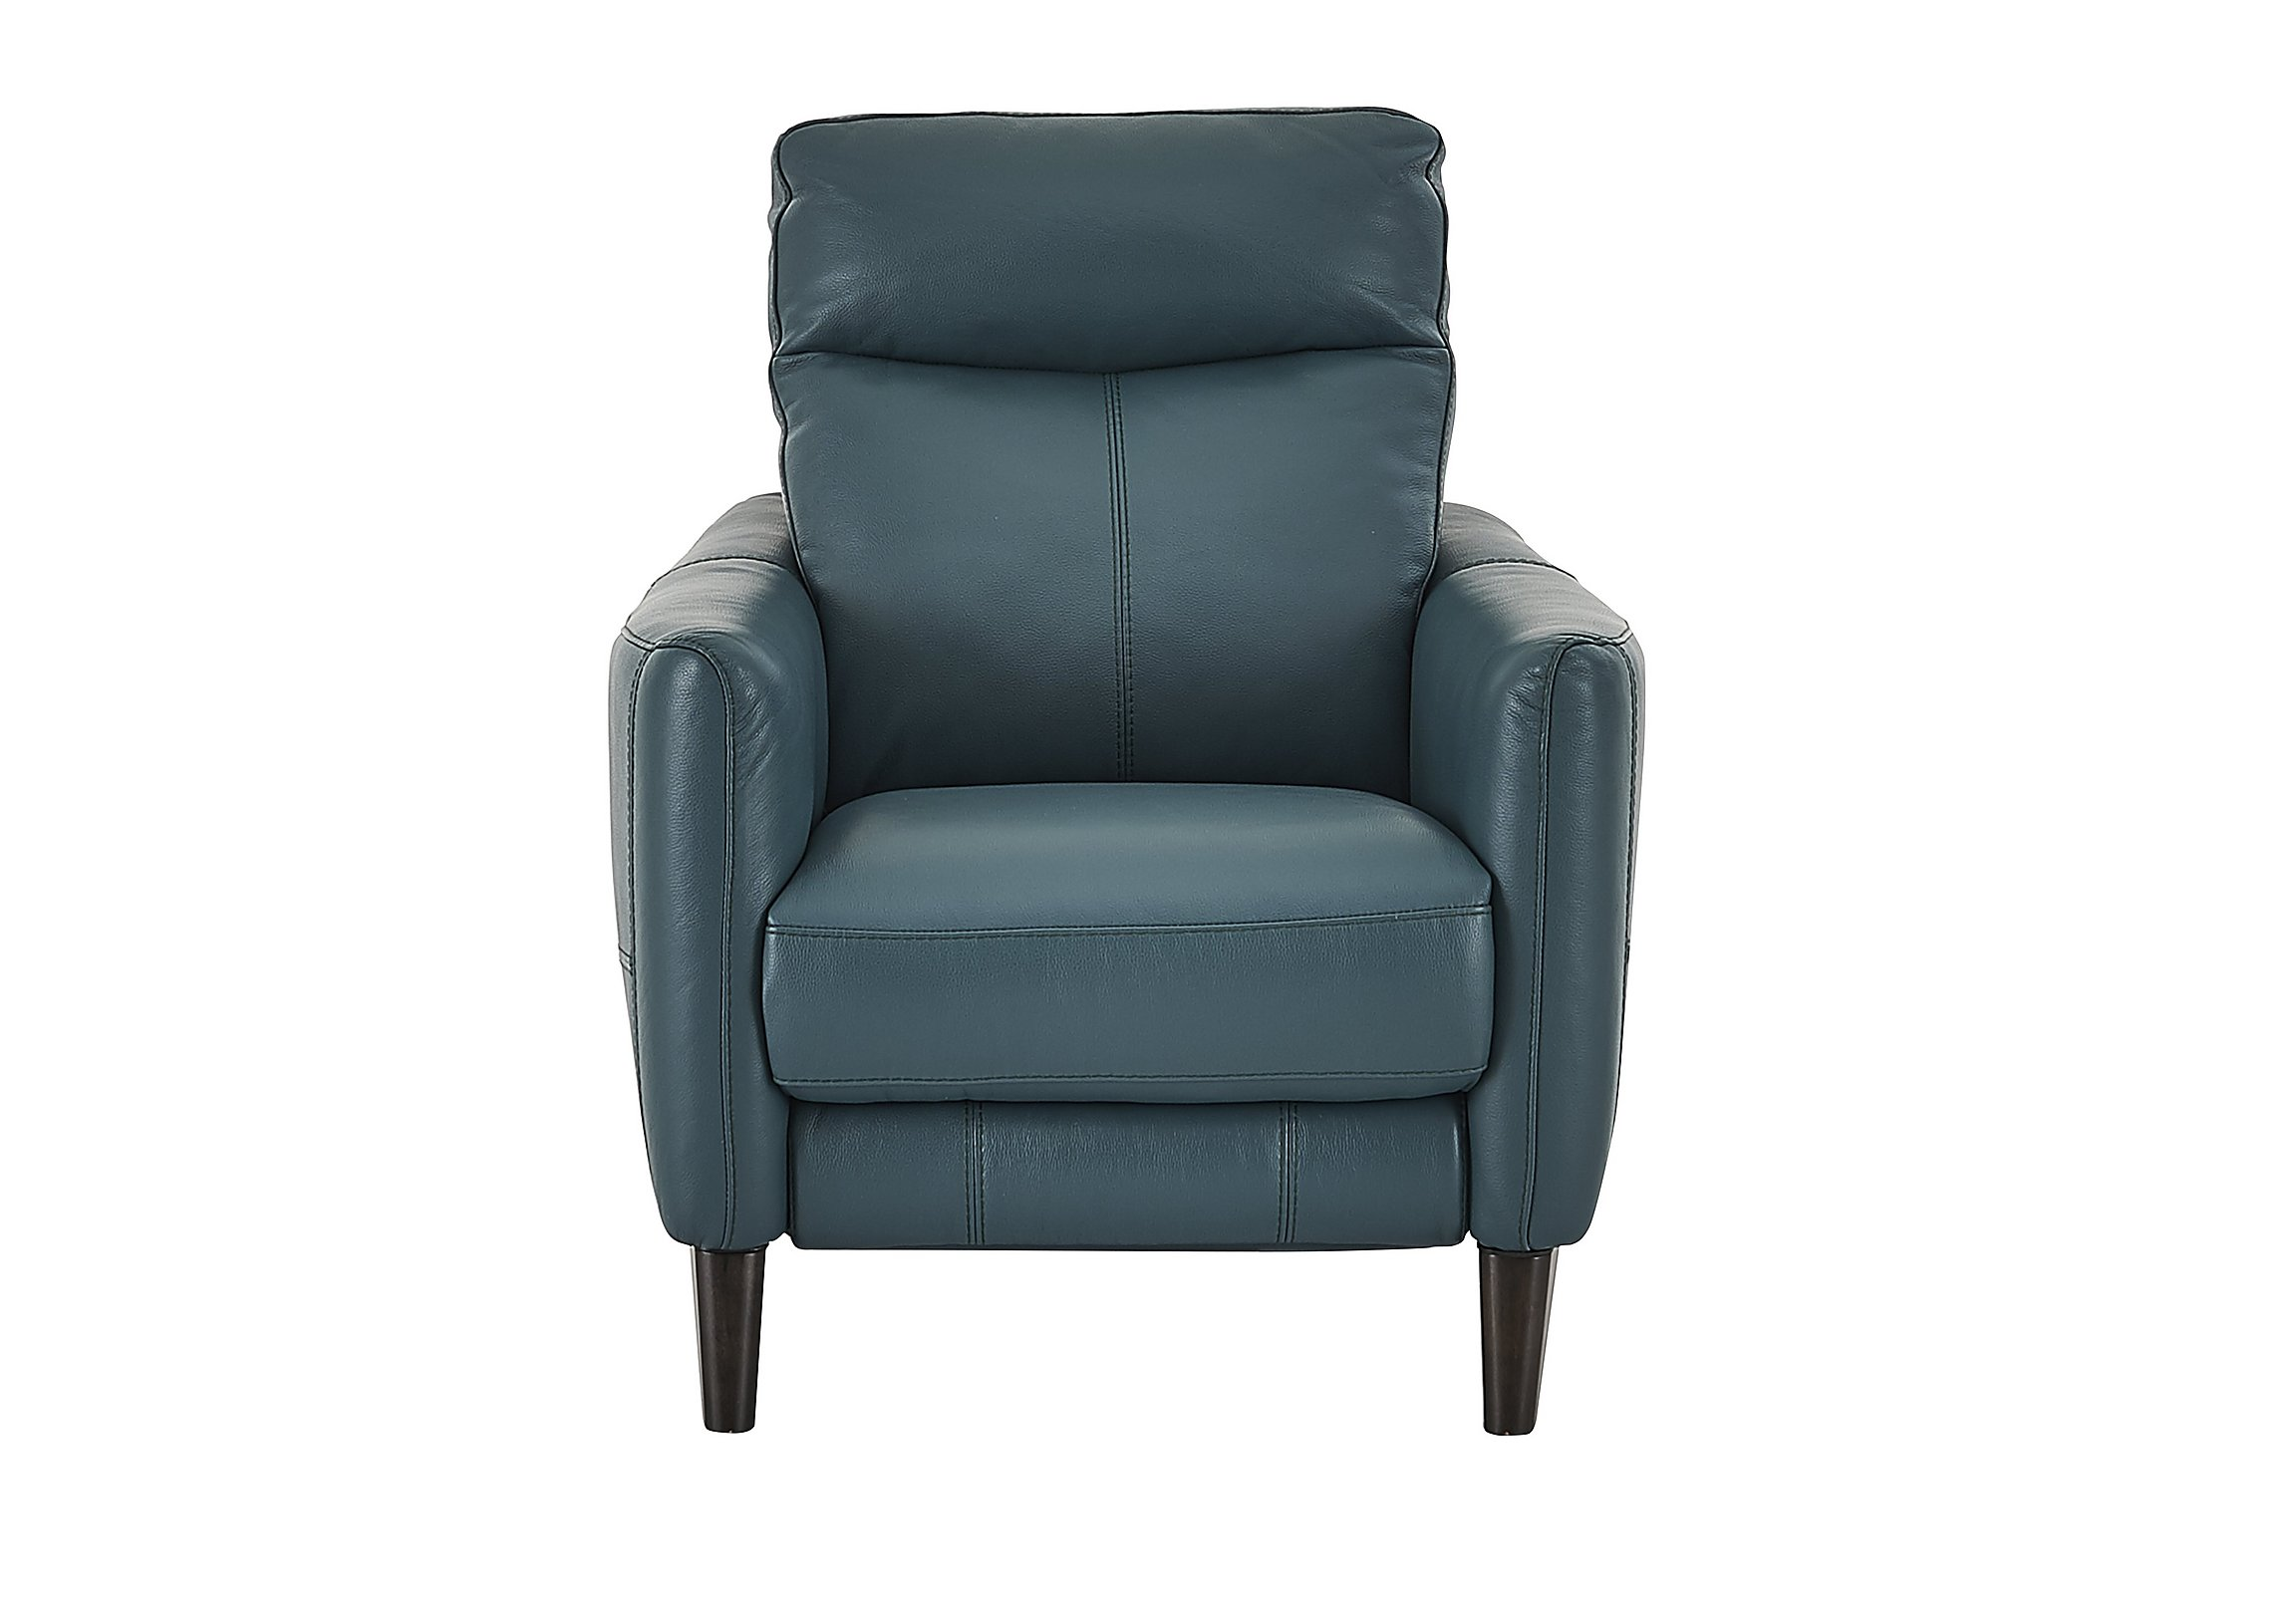 chair gallery oaks by royal black recliner leather